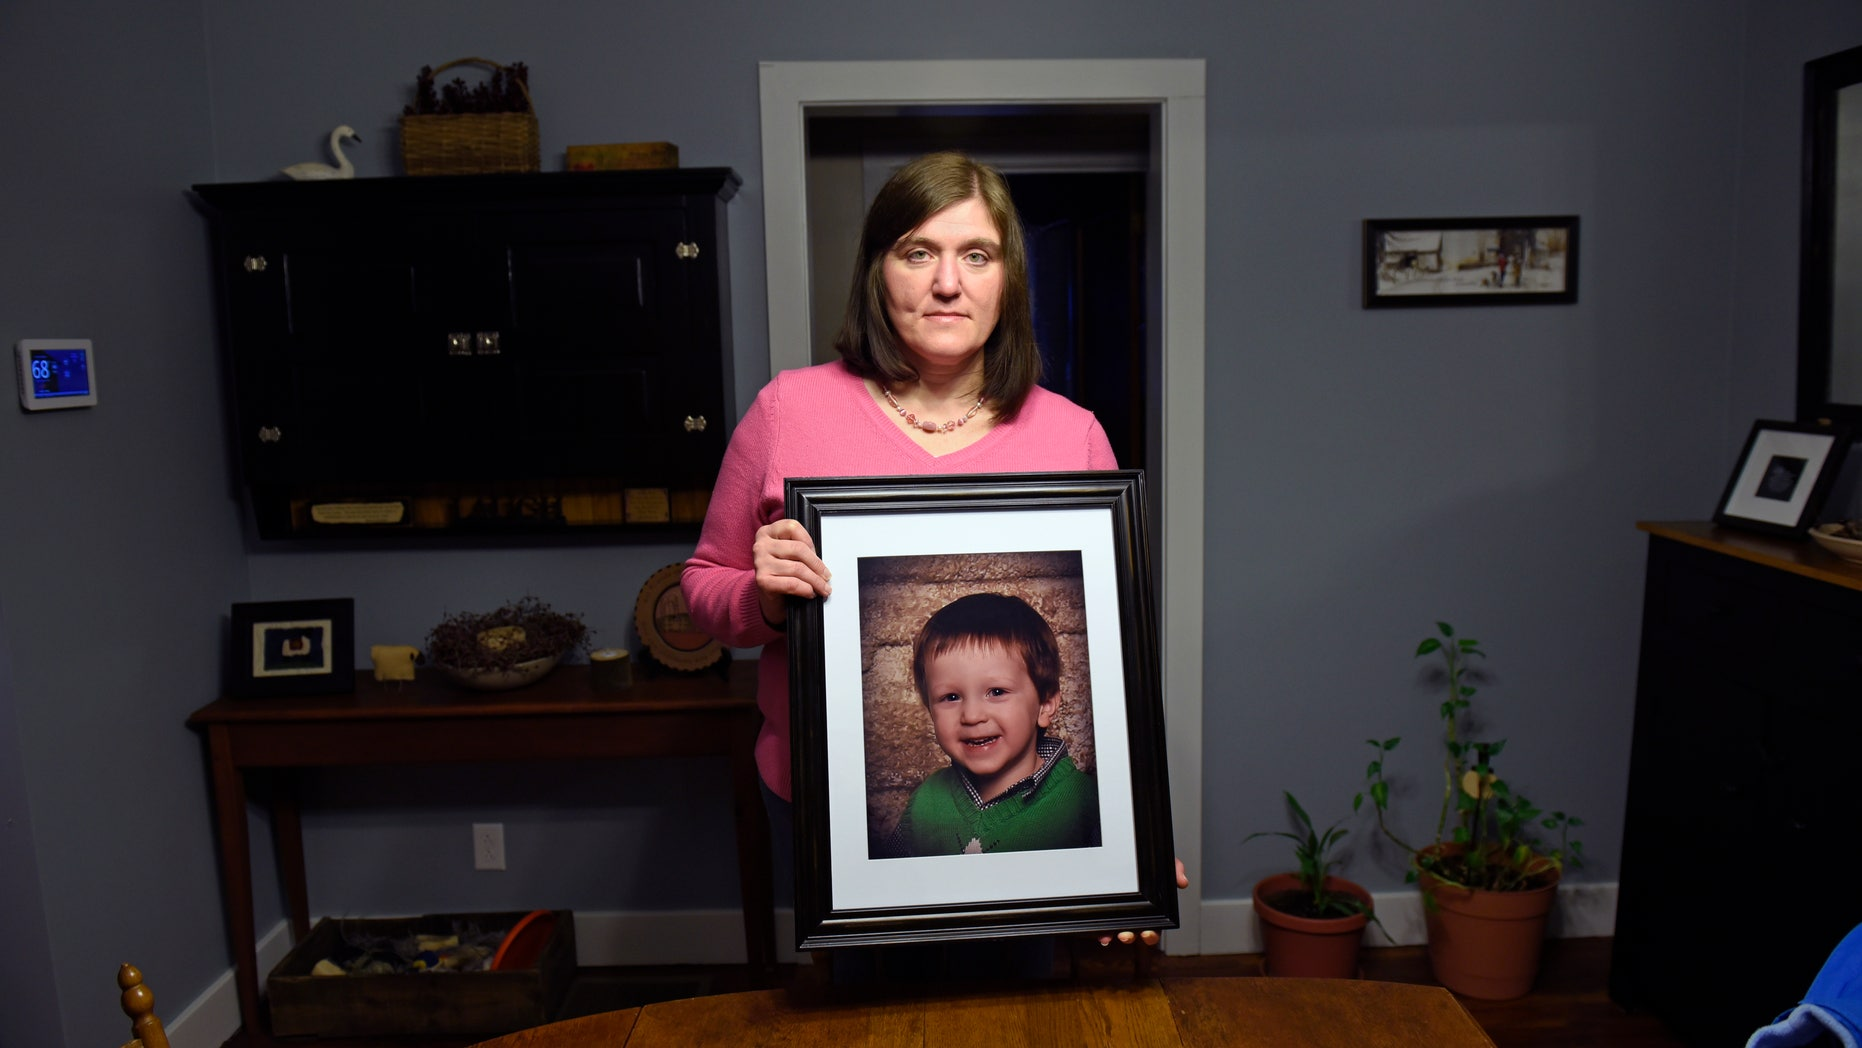 Hollie Ayers poses with a photograph of her late son, Michael, at her home in Bedford, Pa.